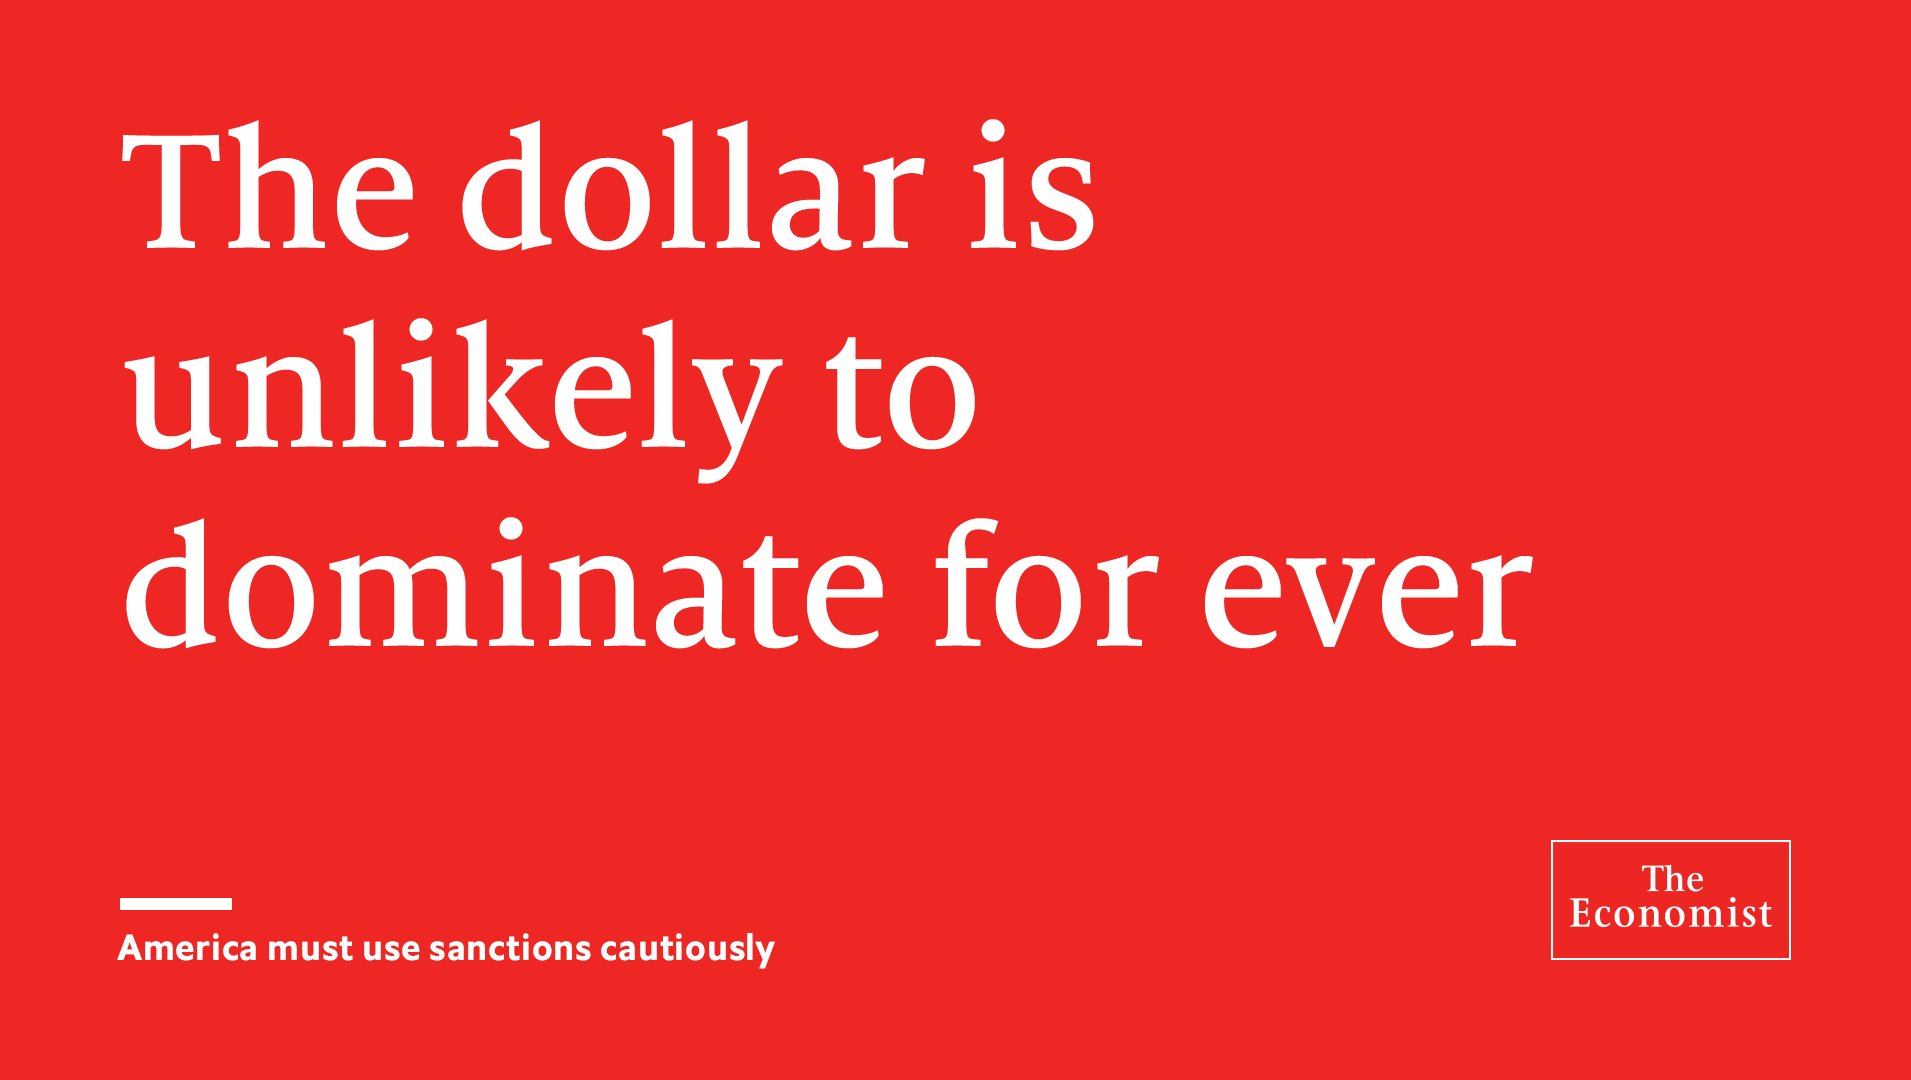 Using the dollar as a bludgeon has already led to capricious and arbitrary decision-making https://t.co/YZl9IvnlkA https://t.co/X9N7KowbKw